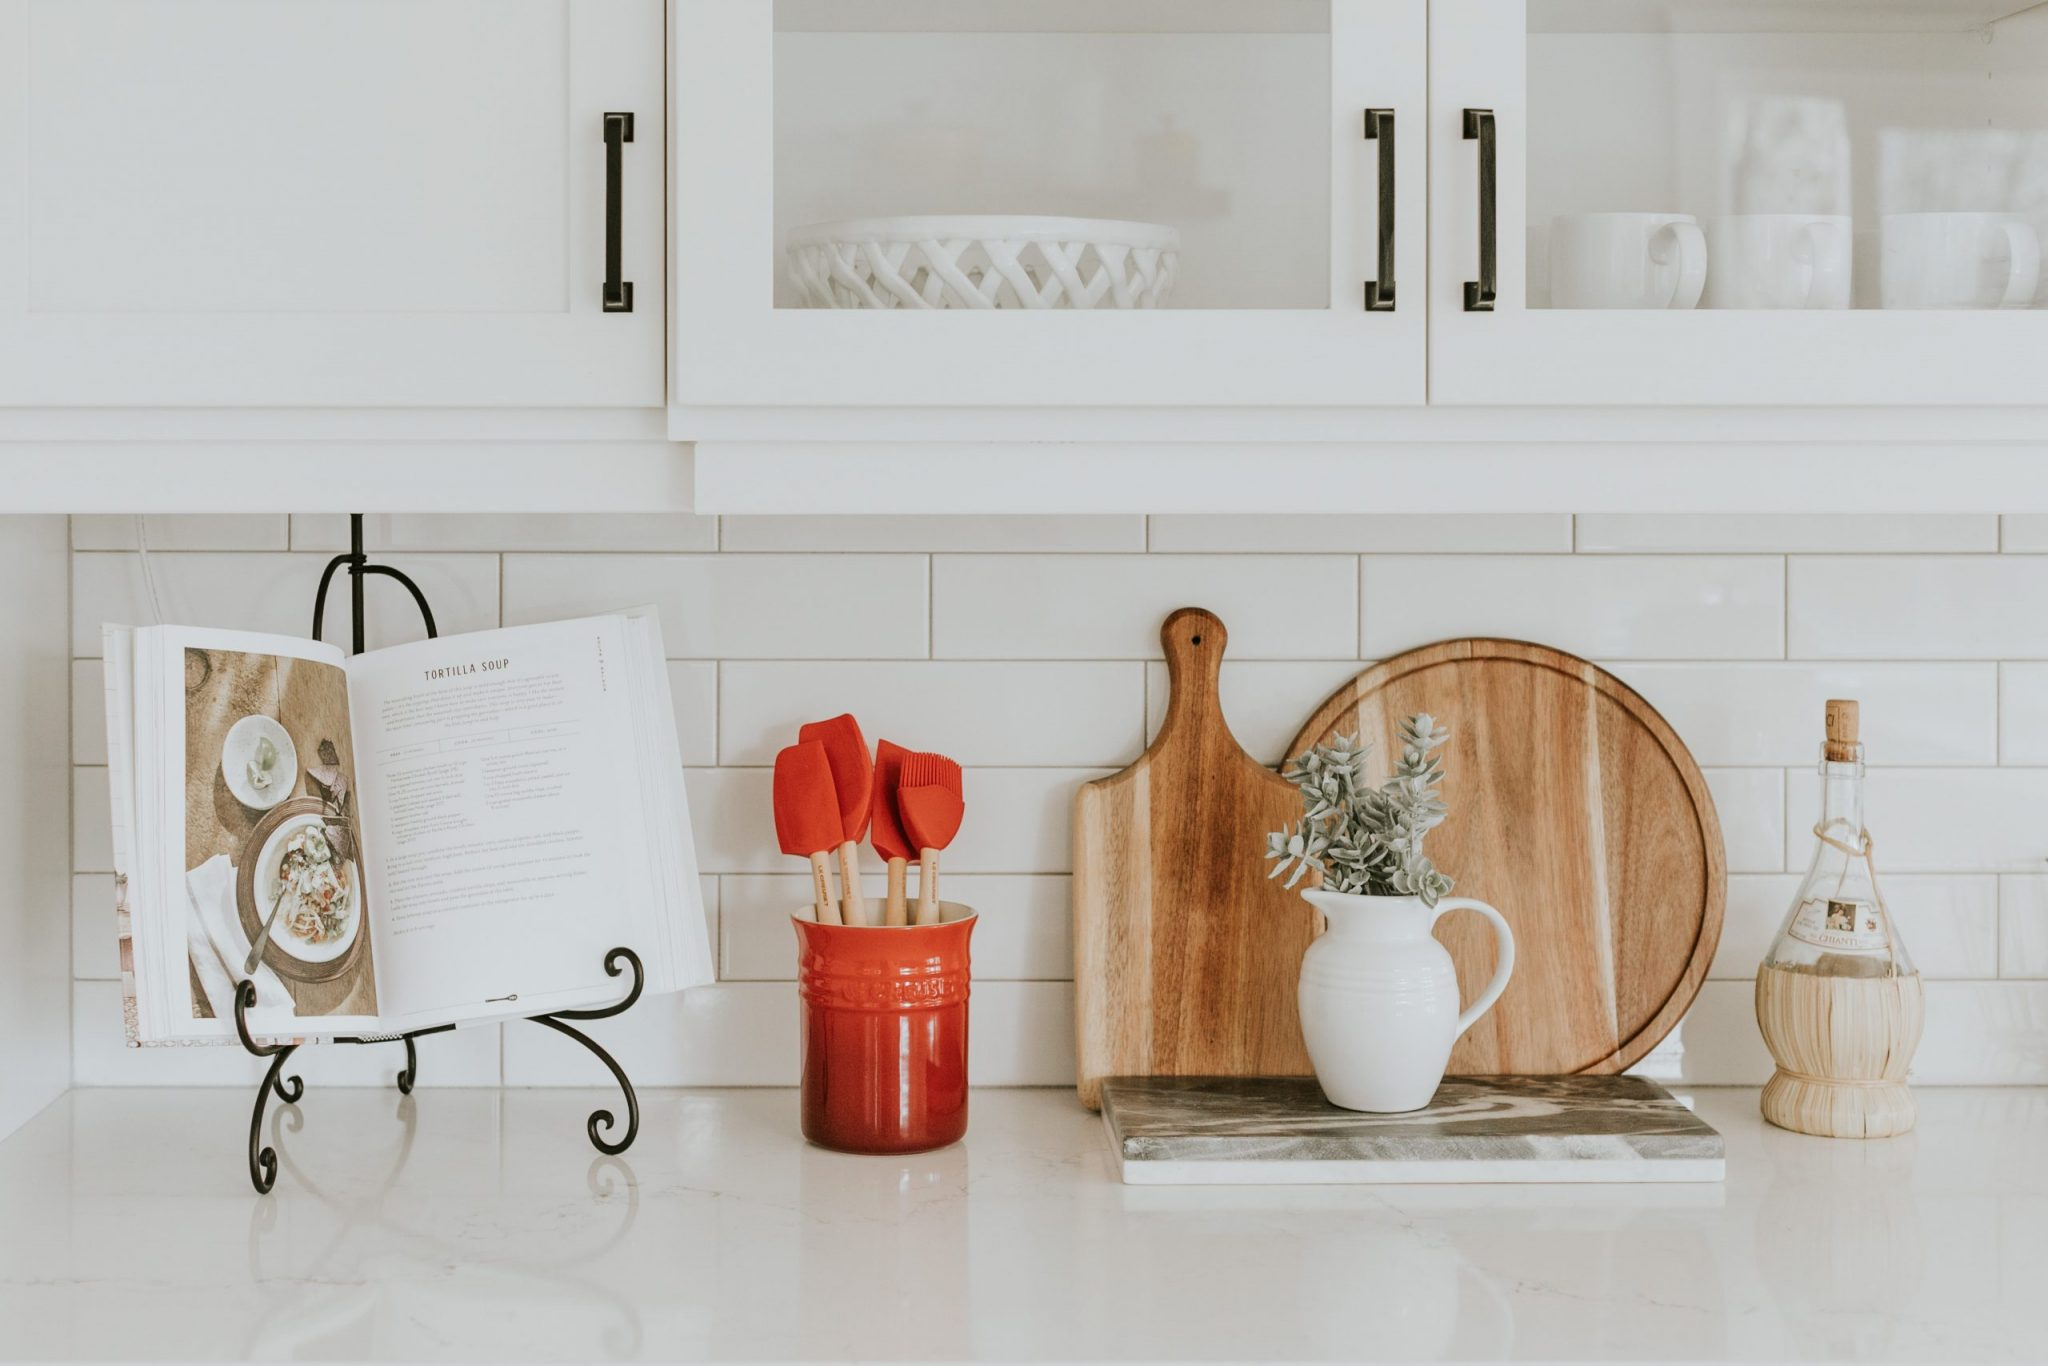 Cook book and cooking utensils on kitchen counter